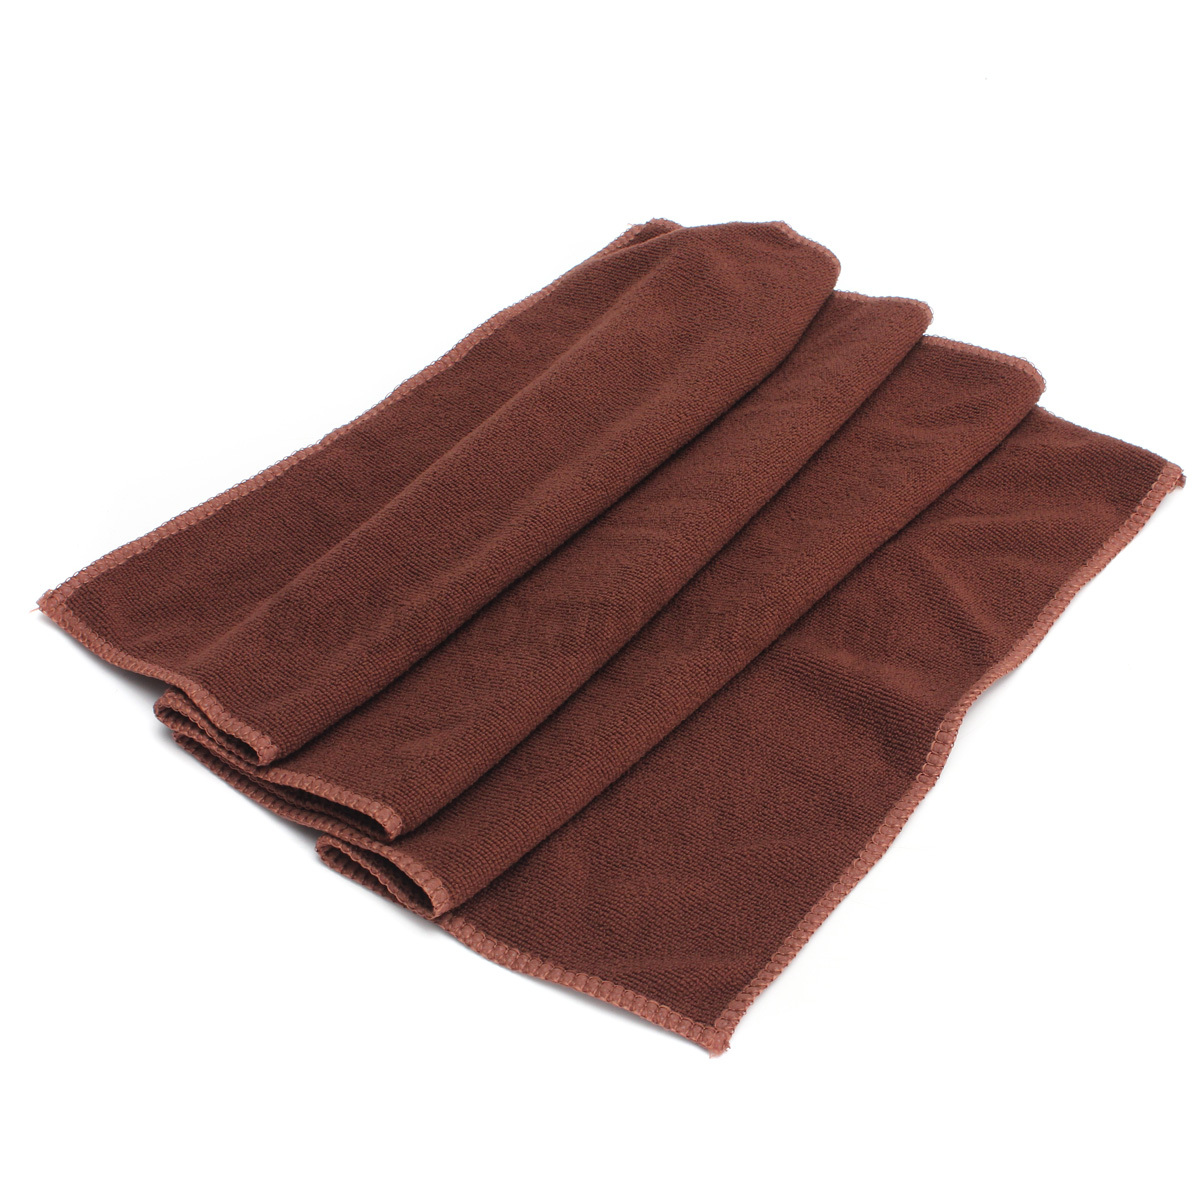 Best Quick Dry Towel For Gym: Travel Camping Hiking Gym Workout Yoga Sports Fast Quick